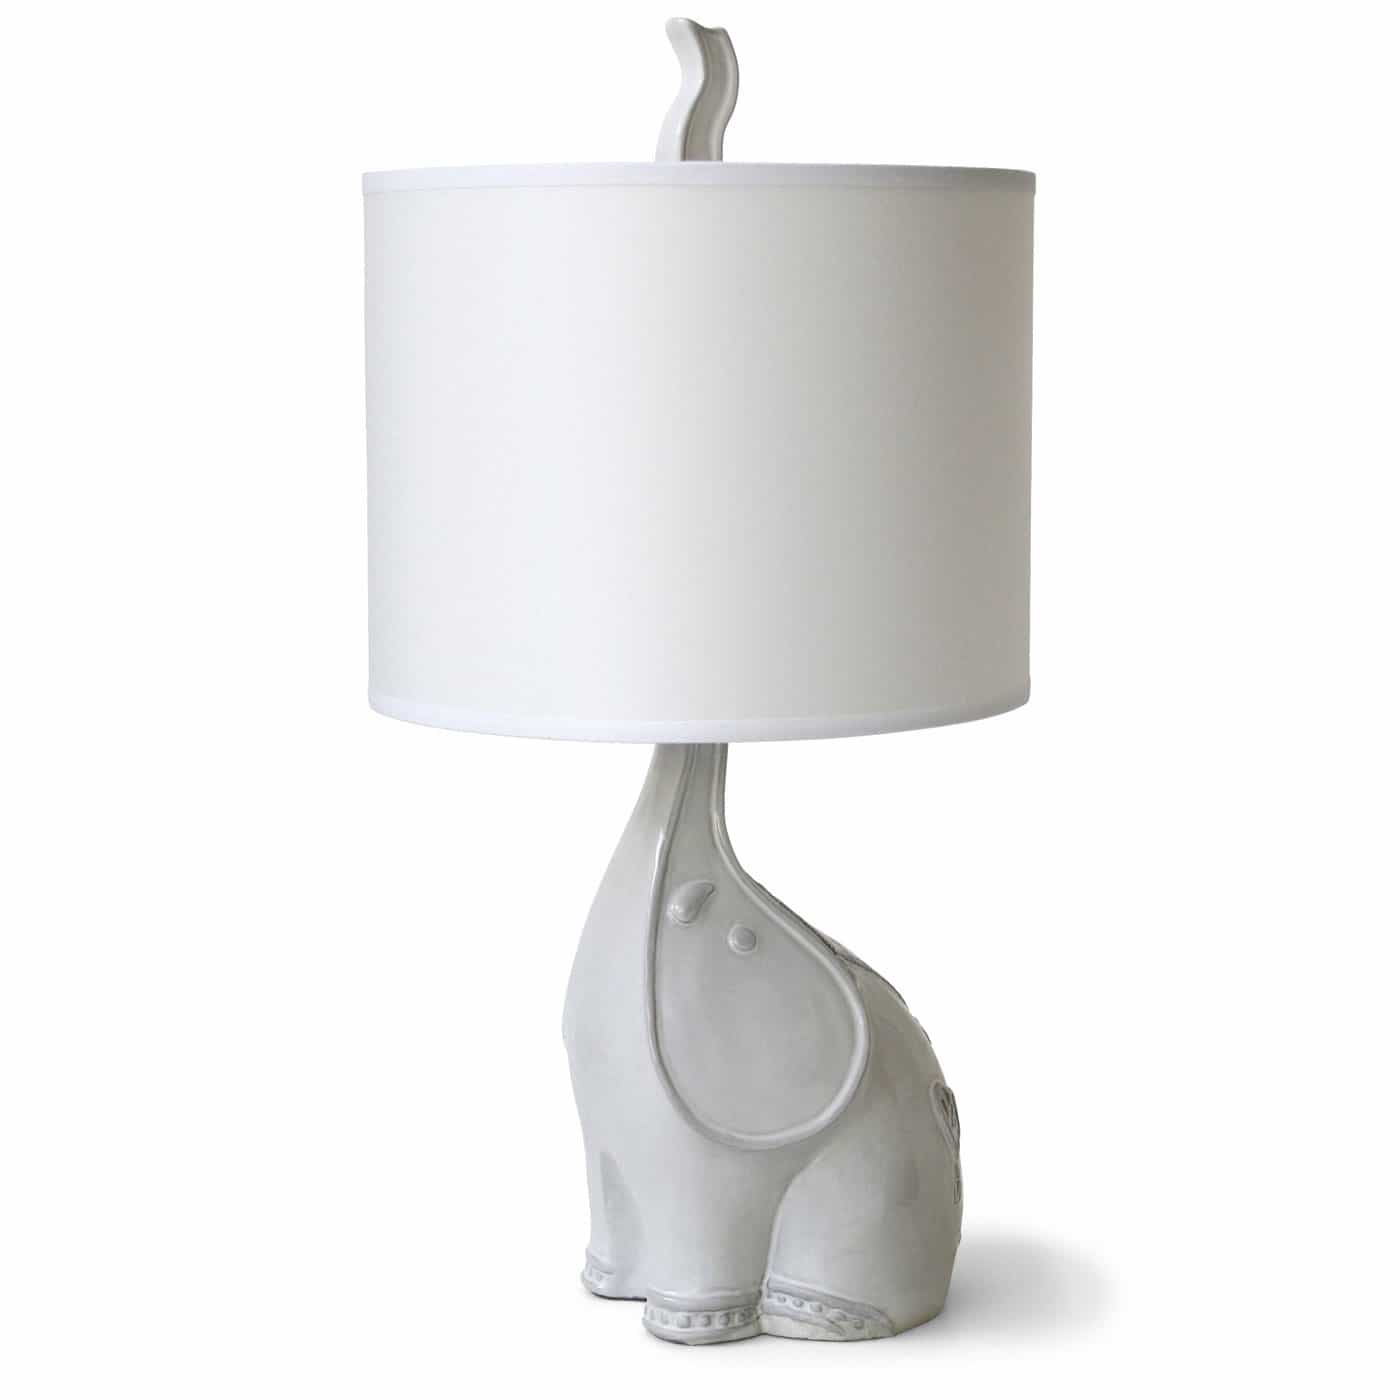 Lamps For Baby Nursery The Look For Less Diy Jonathan Adler Lamp Bugaboocity